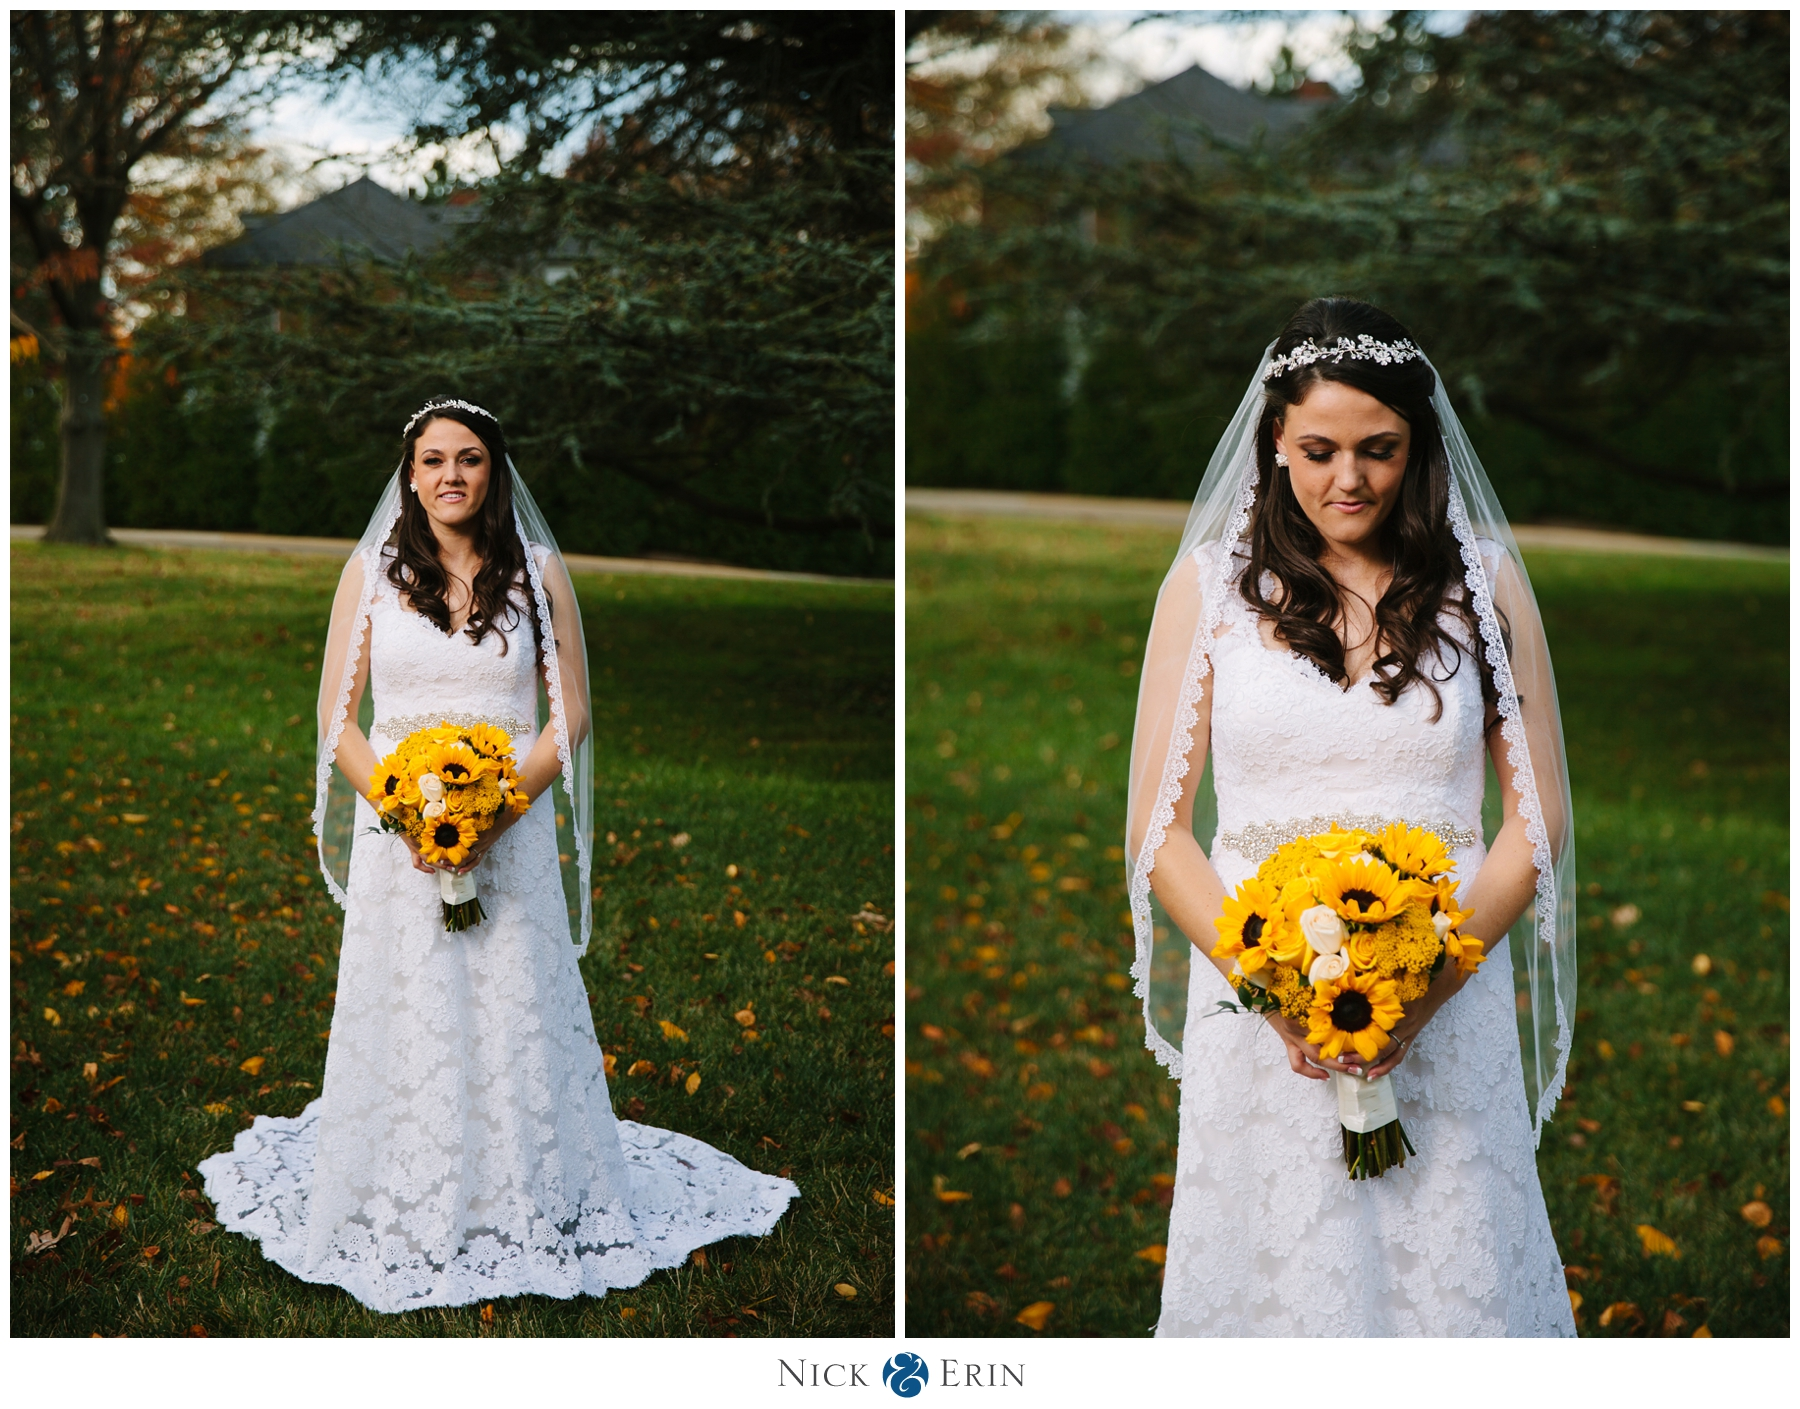 Donner_Photography_Fort Myer Wedding_Katie & Will_0027